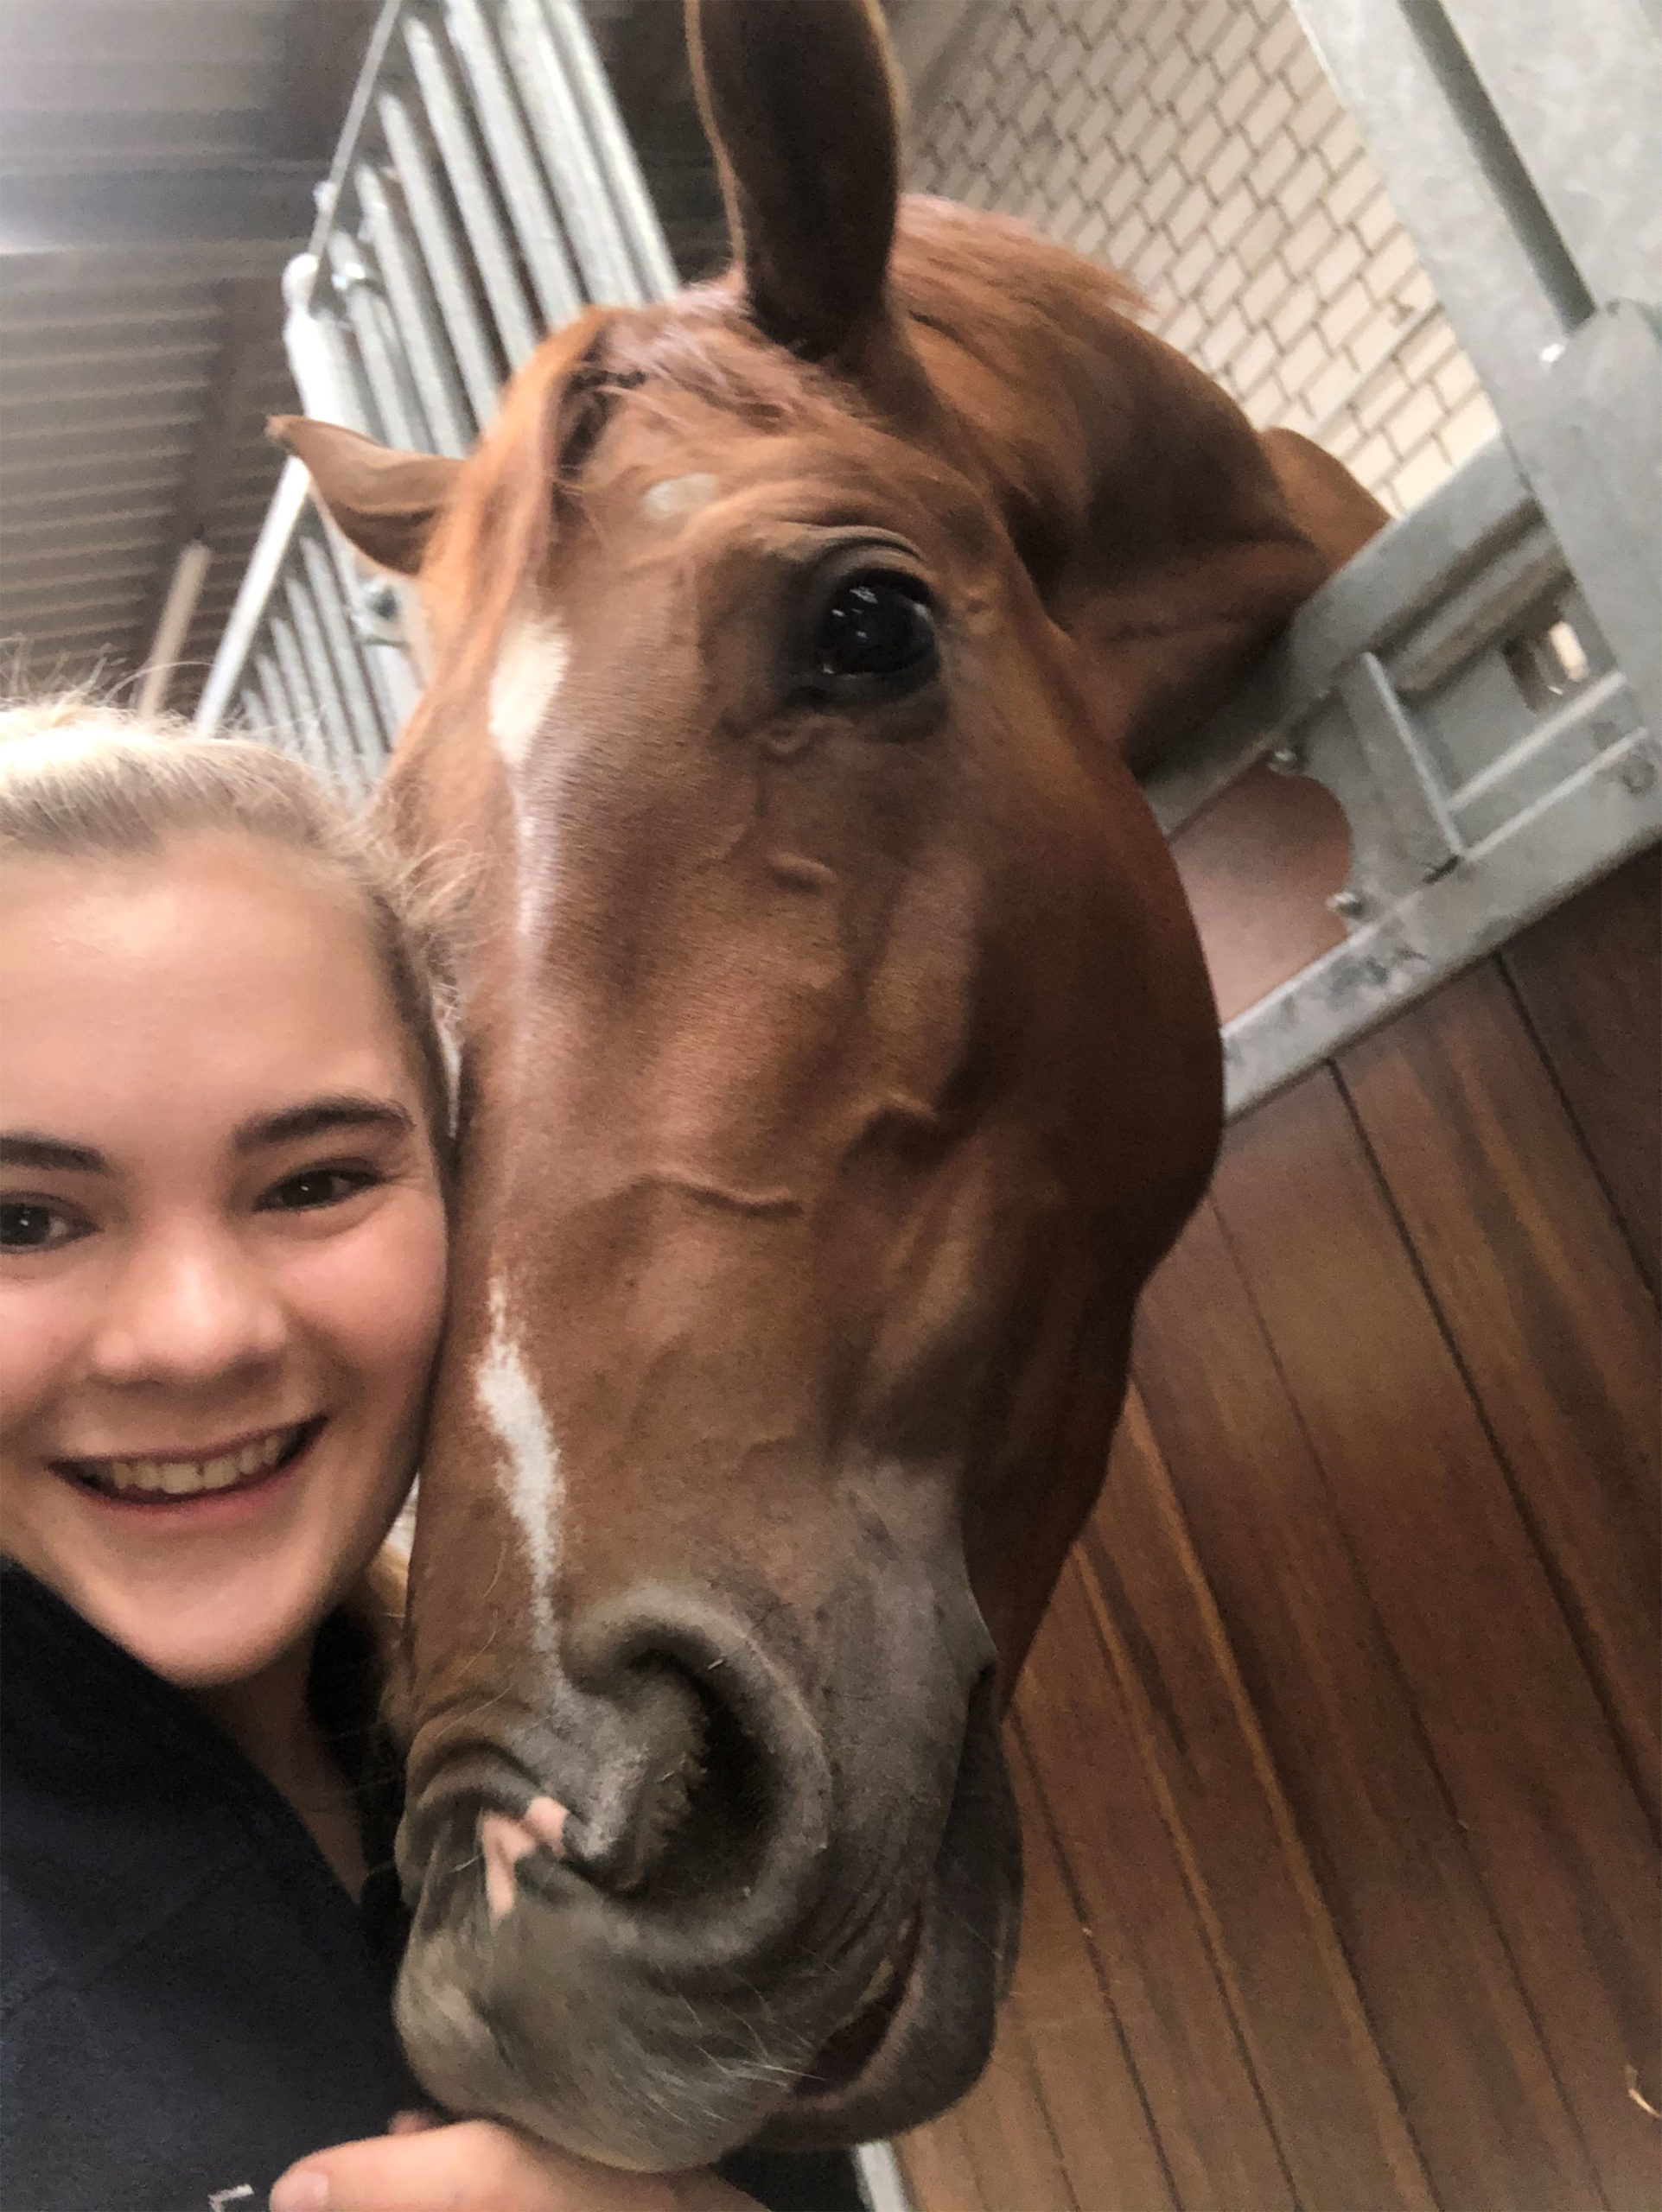 Girl and horse selfie